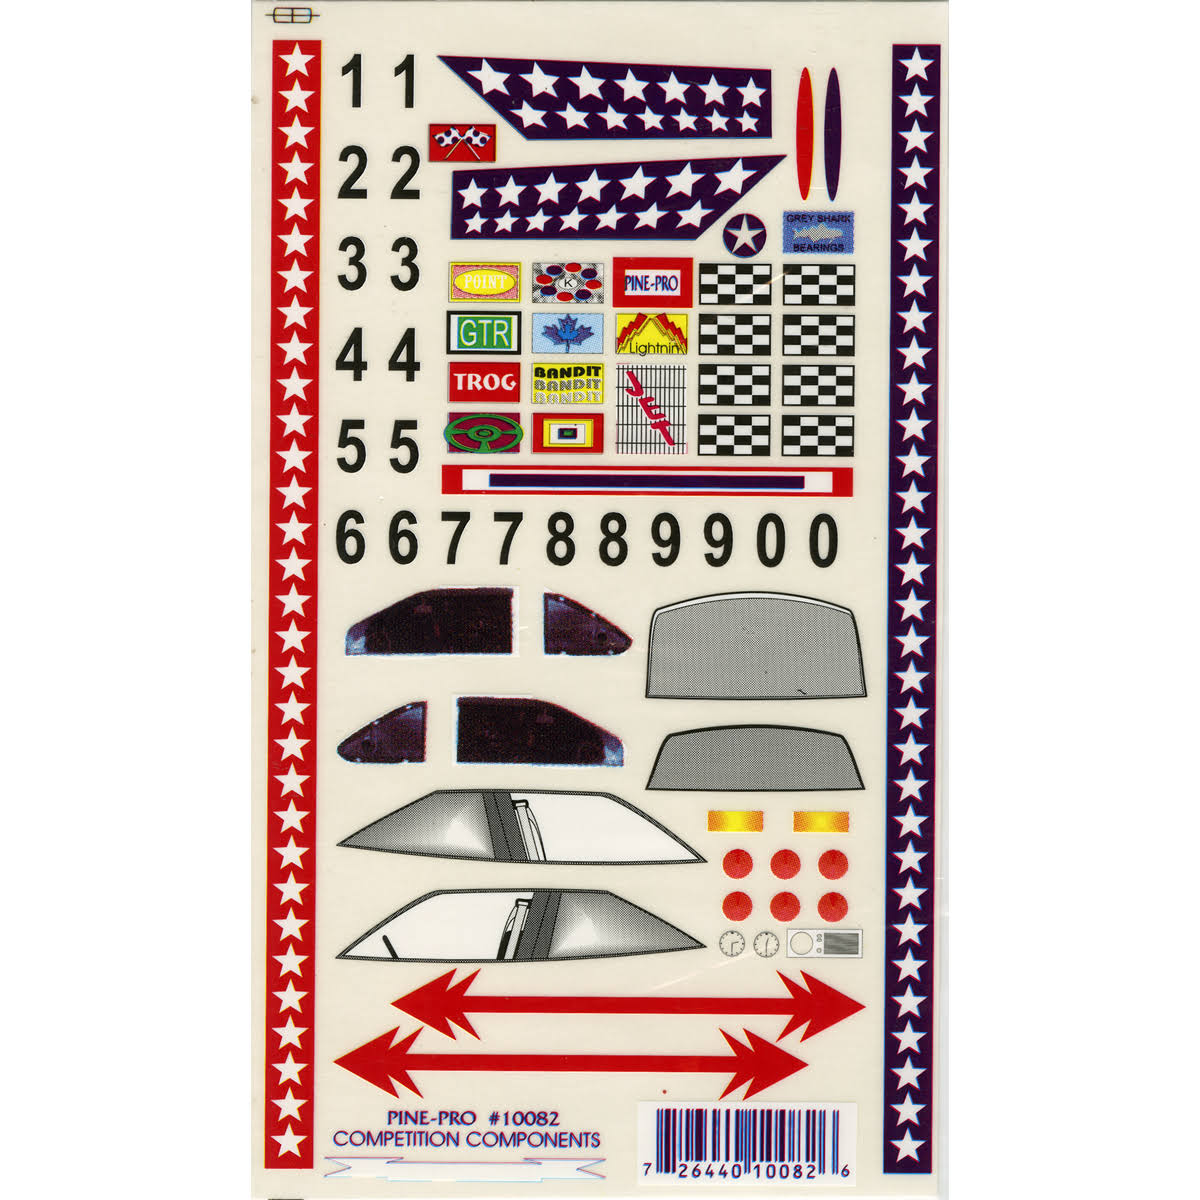 "Pine-Pro Pine Car Derby Super Stock with Number Set Decal - 5"" x 8"""